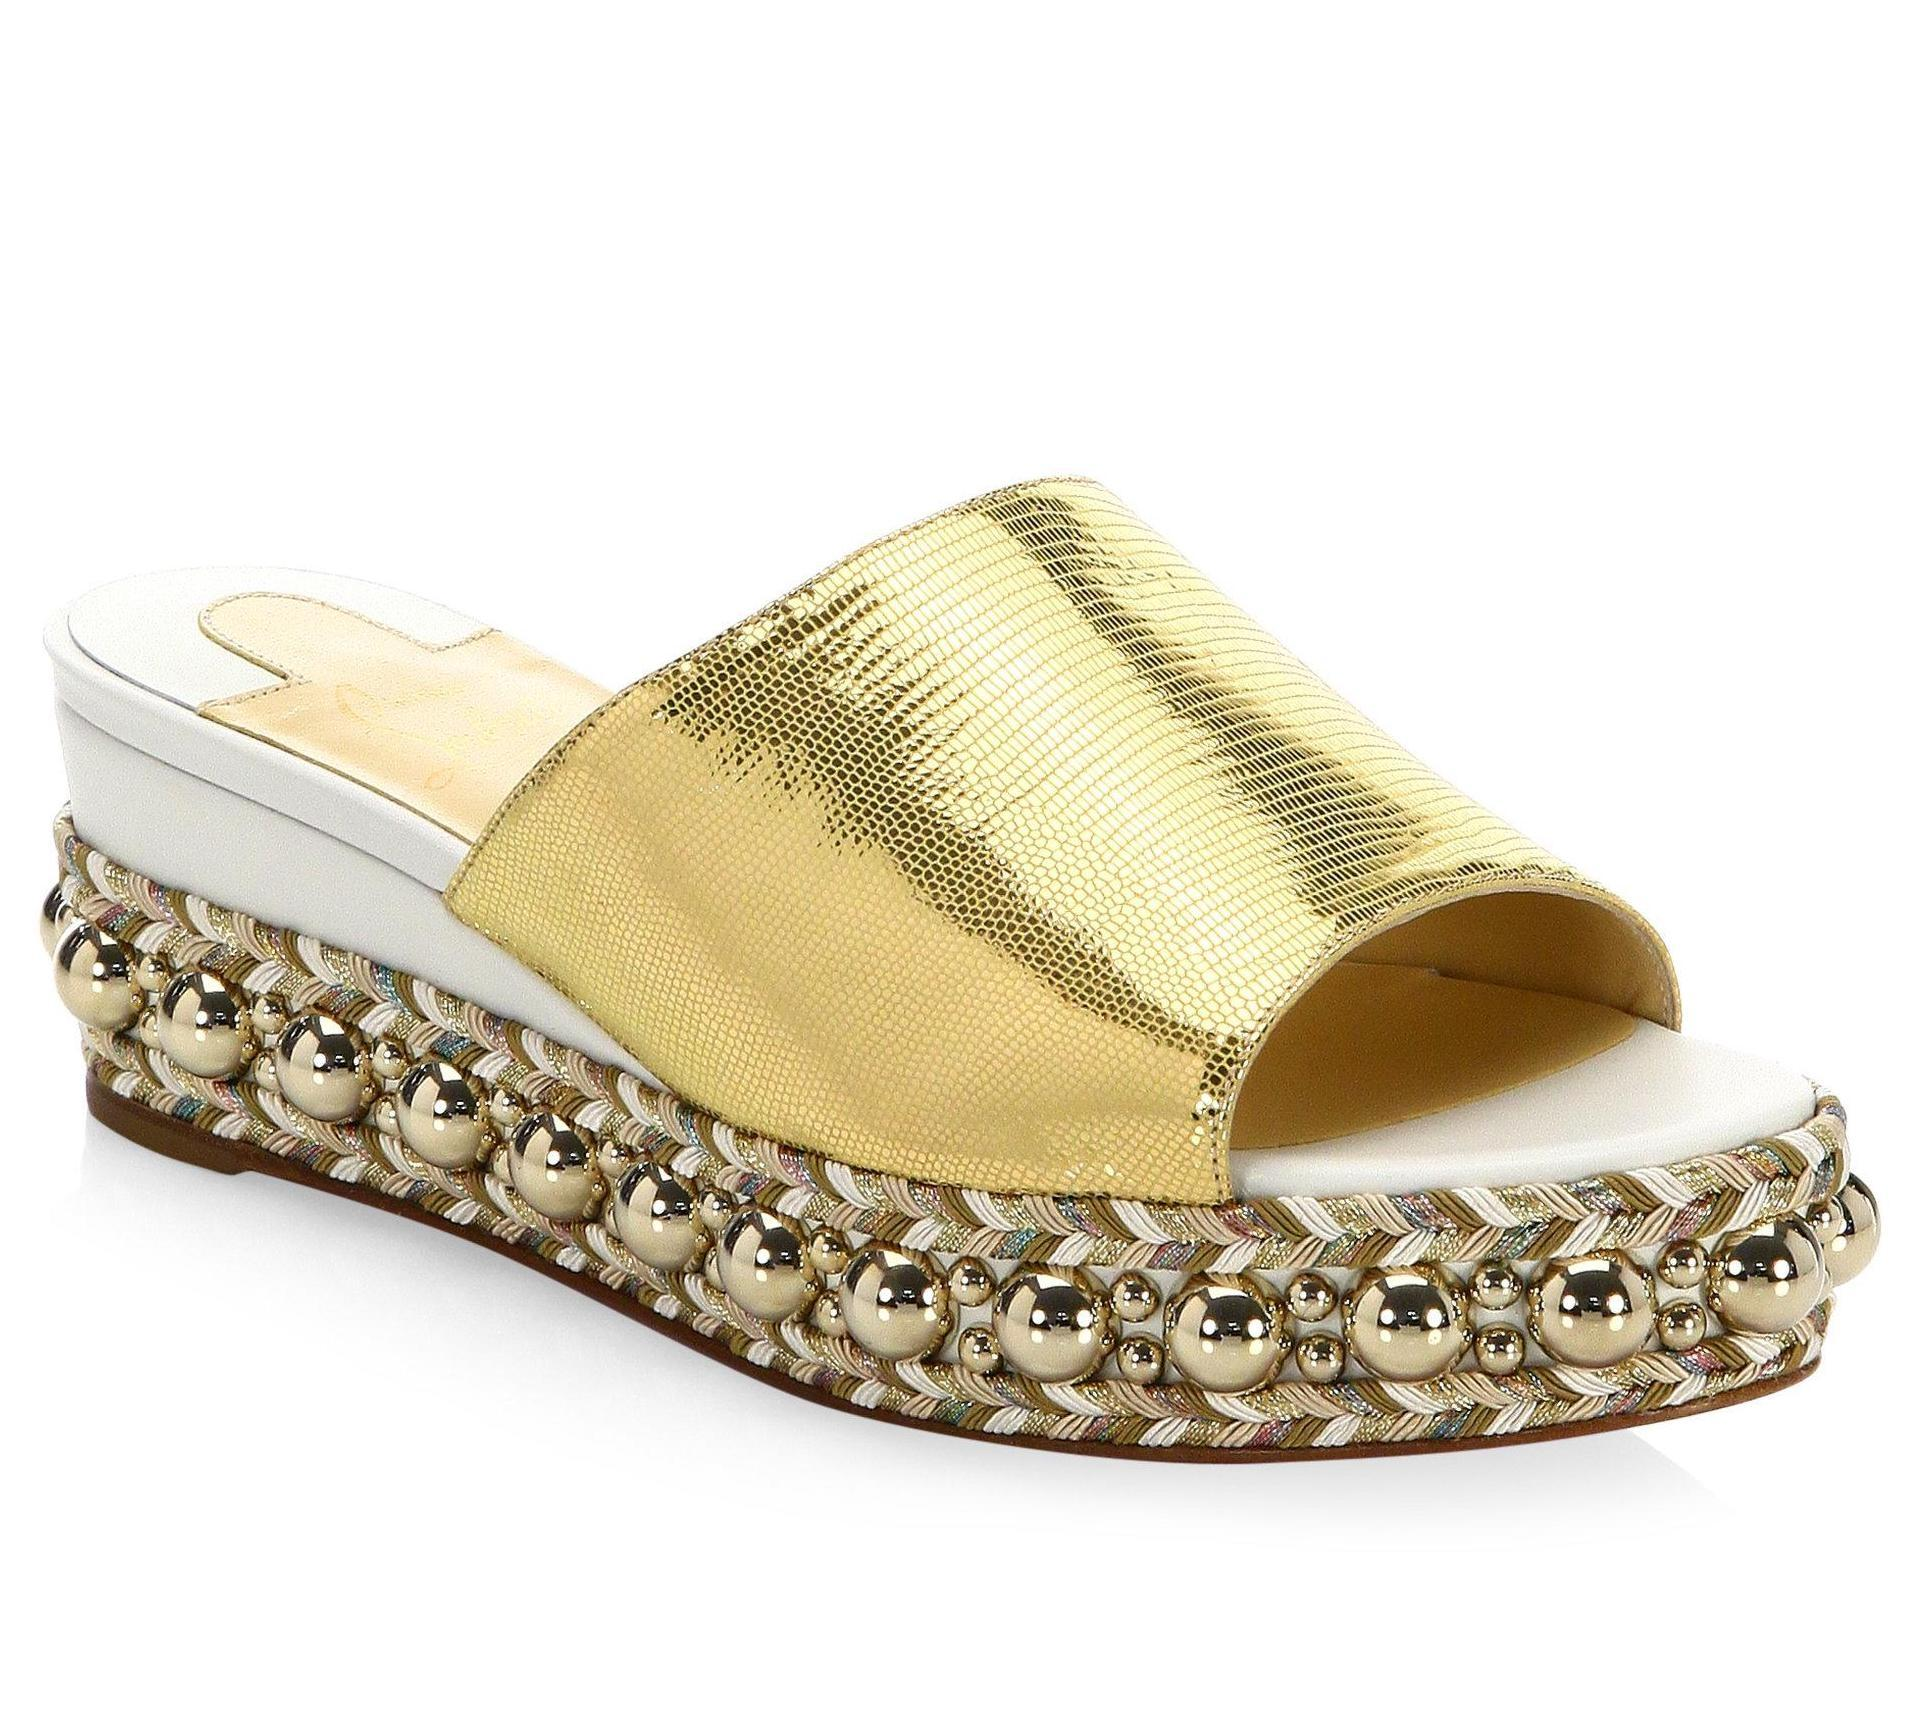 Christian Louboutin Latte Metallic Gold Janibasse 60mm White Studded Spike B068 Sandals Size EU 41 (Approx. US 11) Regular (M, B)